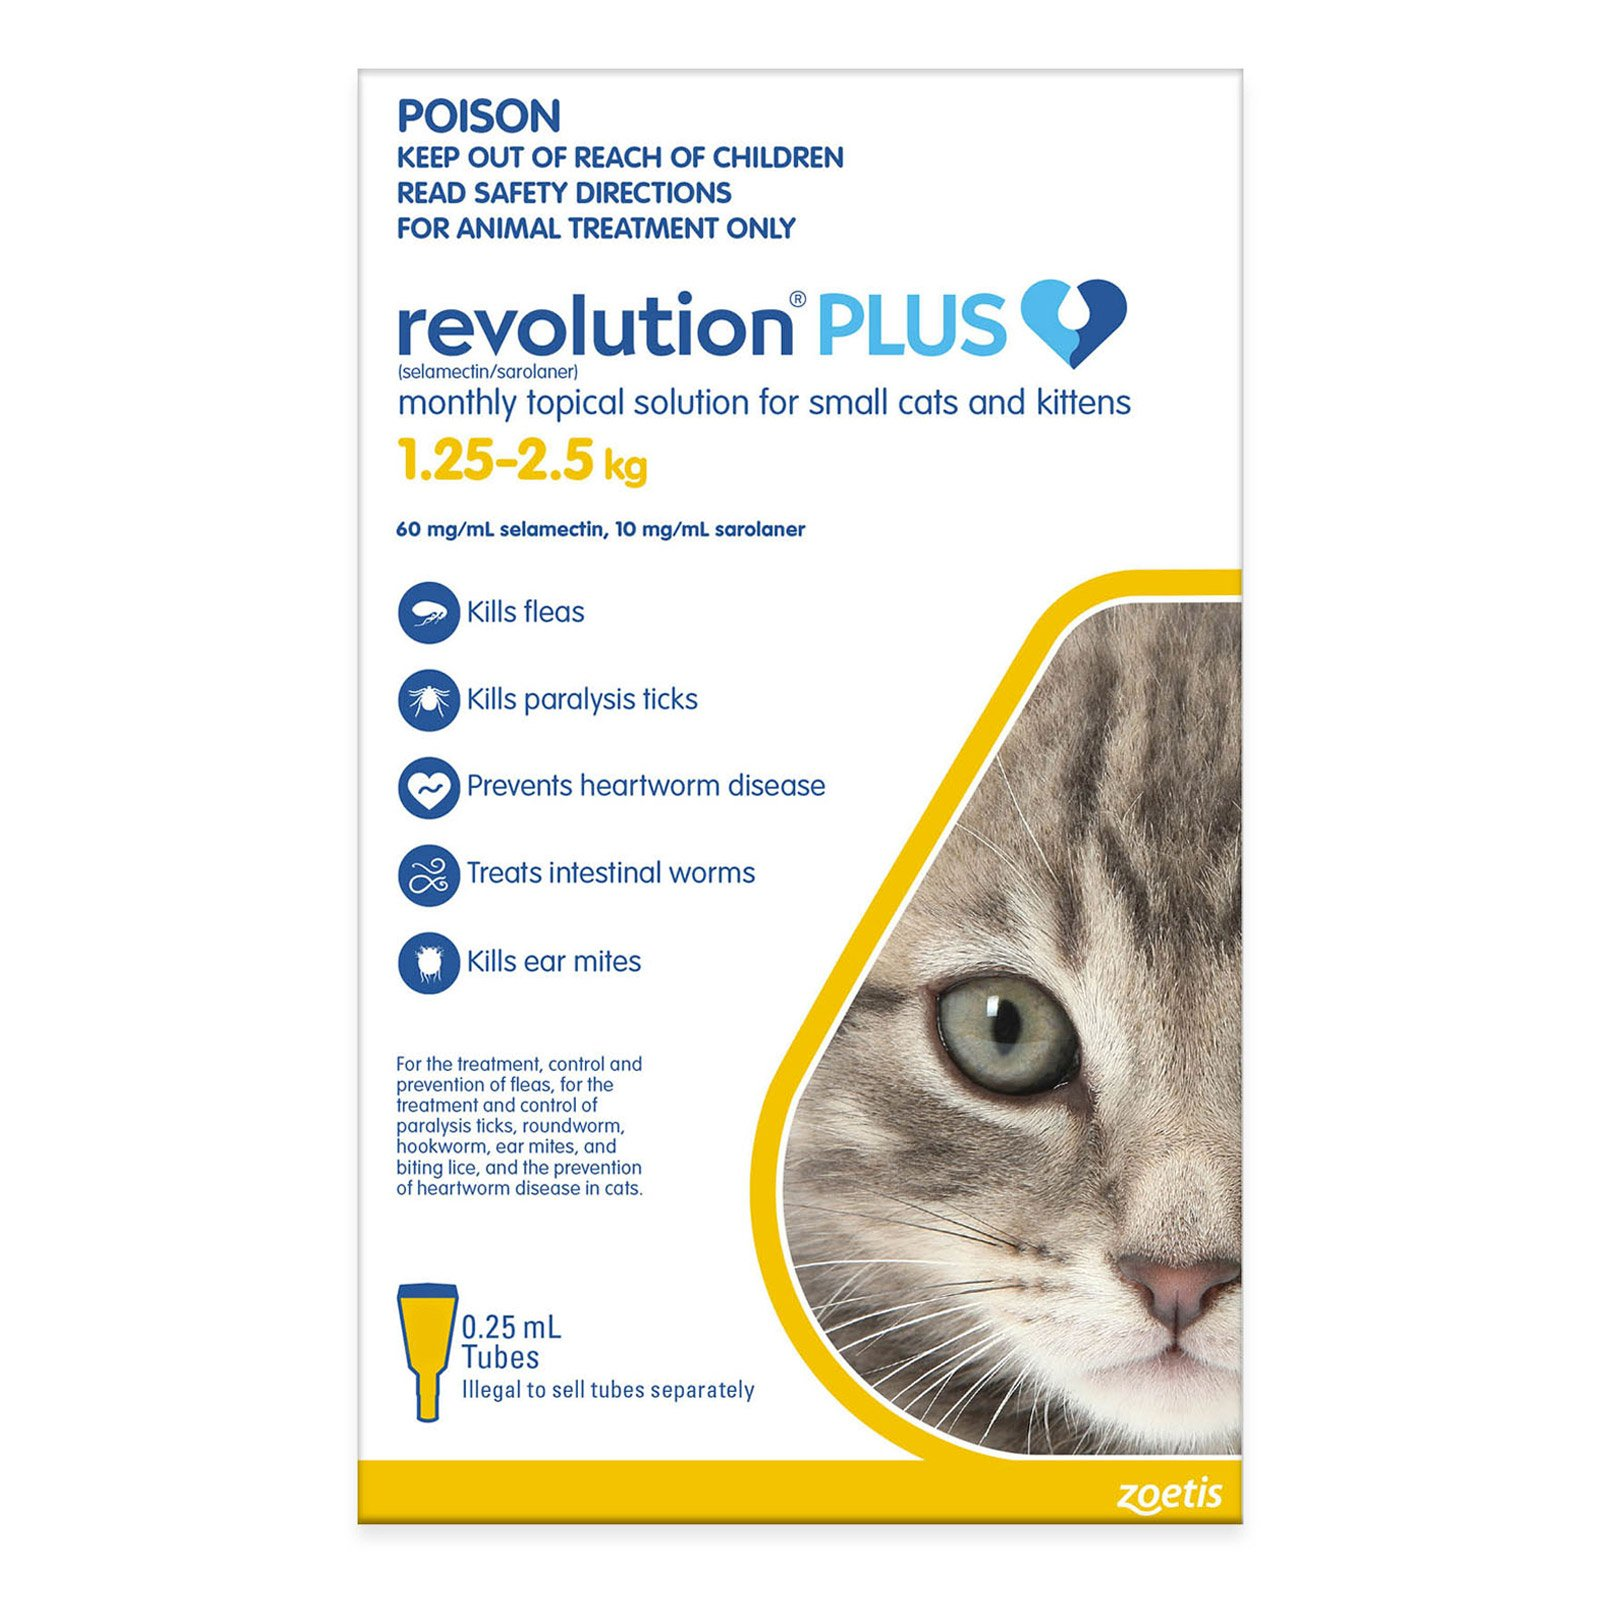 637037198869669686Revolution-plus-for-small-cats-kittens-1.25-2.5kg-yellow.jpg